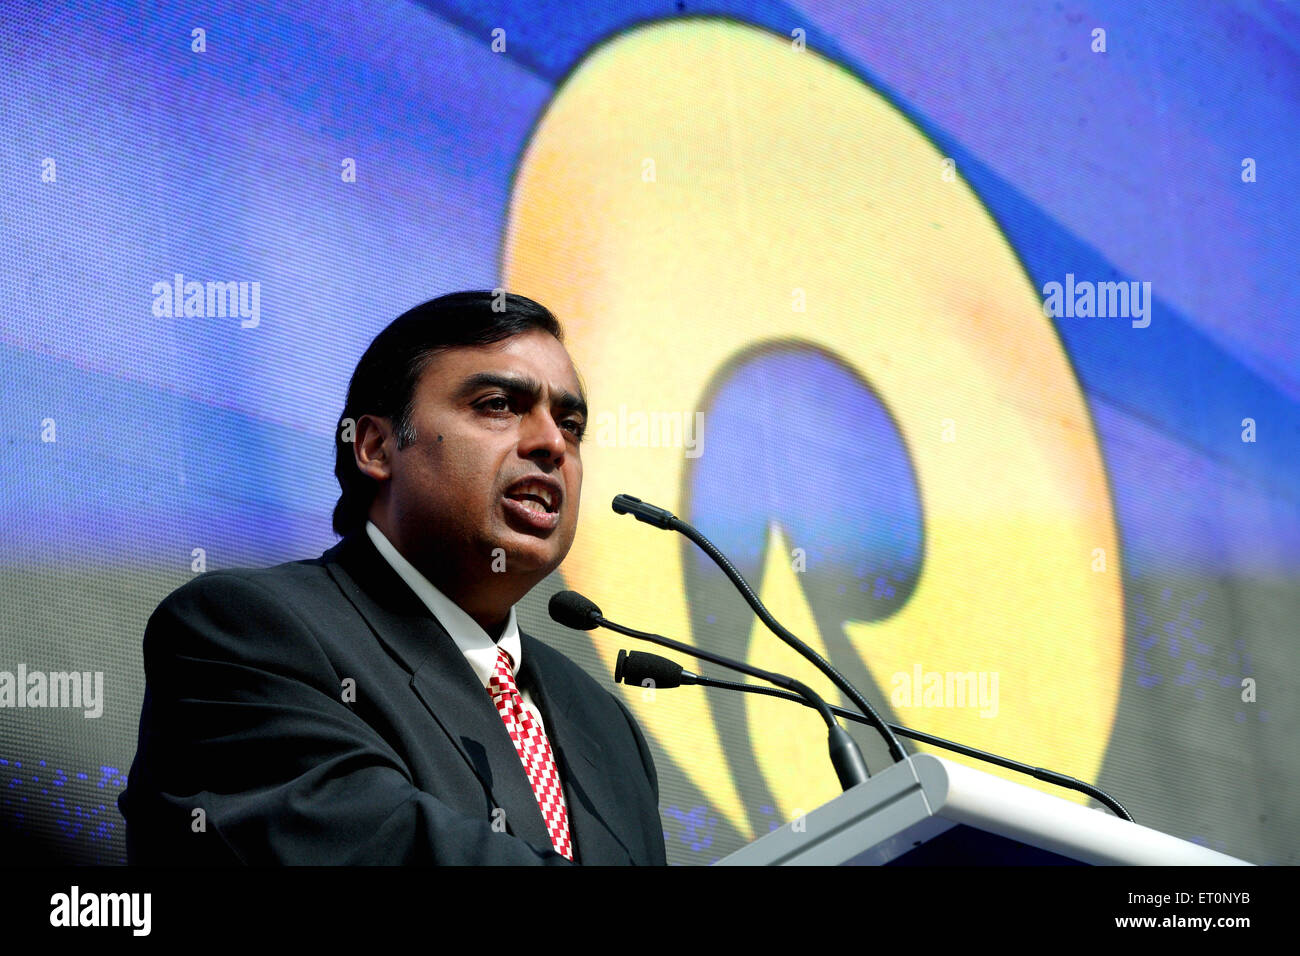 Mukesh Ambani Chairman and Managing Director of Reliance Industries Limited NOMR - Stock Image